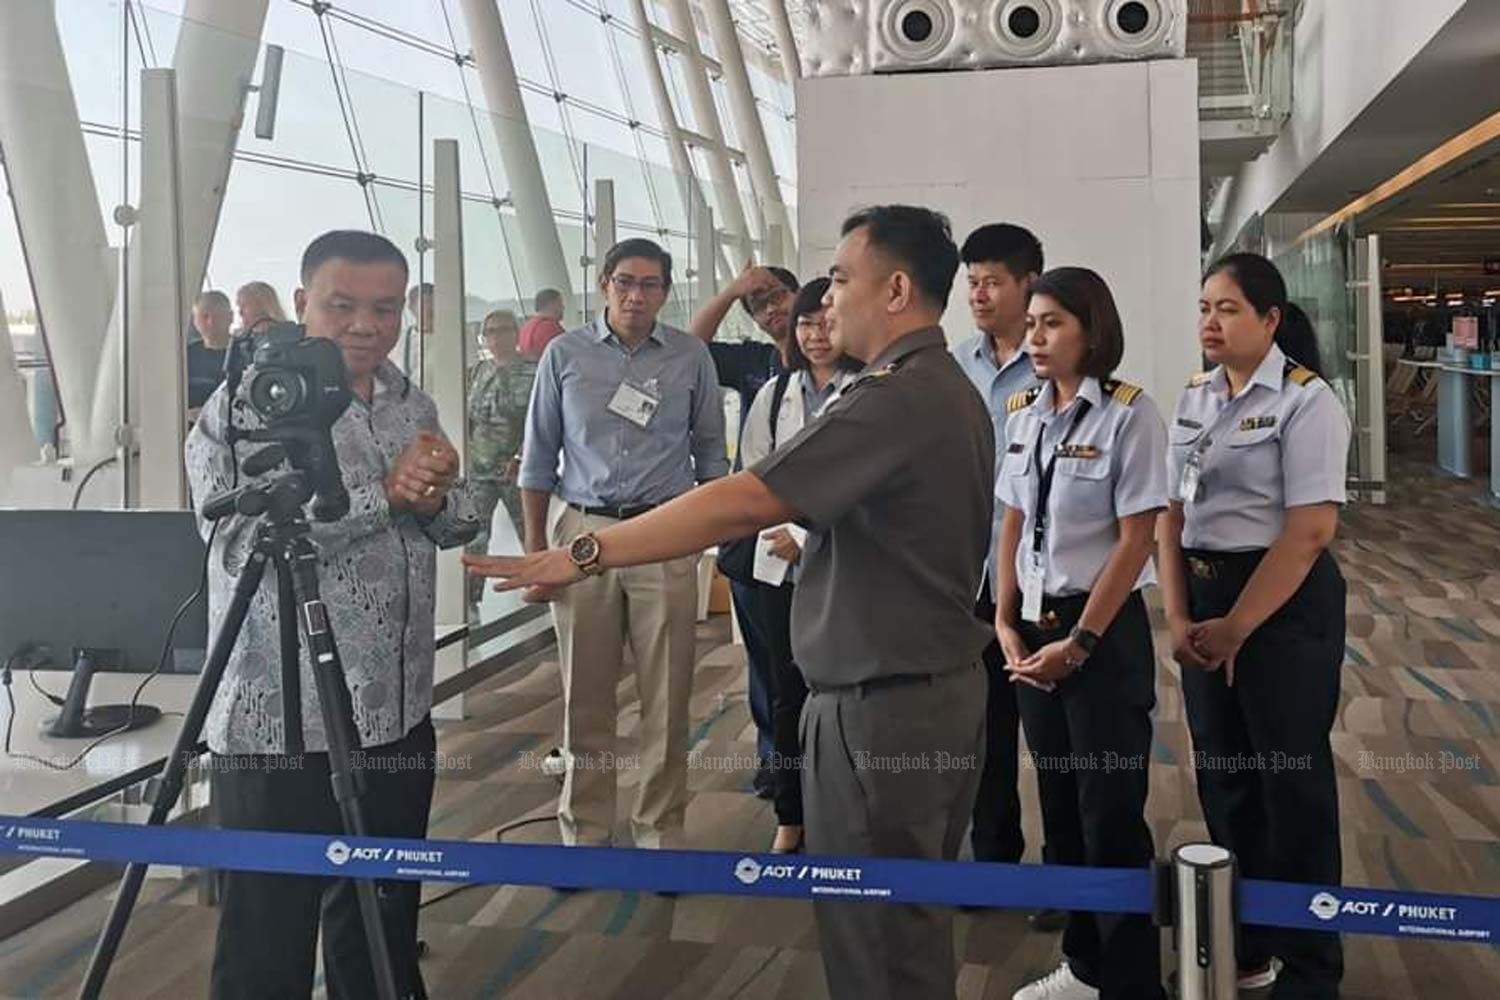 Public Health officials screen people arriving at Phuket and other international airports from Wuhan. (Photo by Achadtaya Chuenniran)